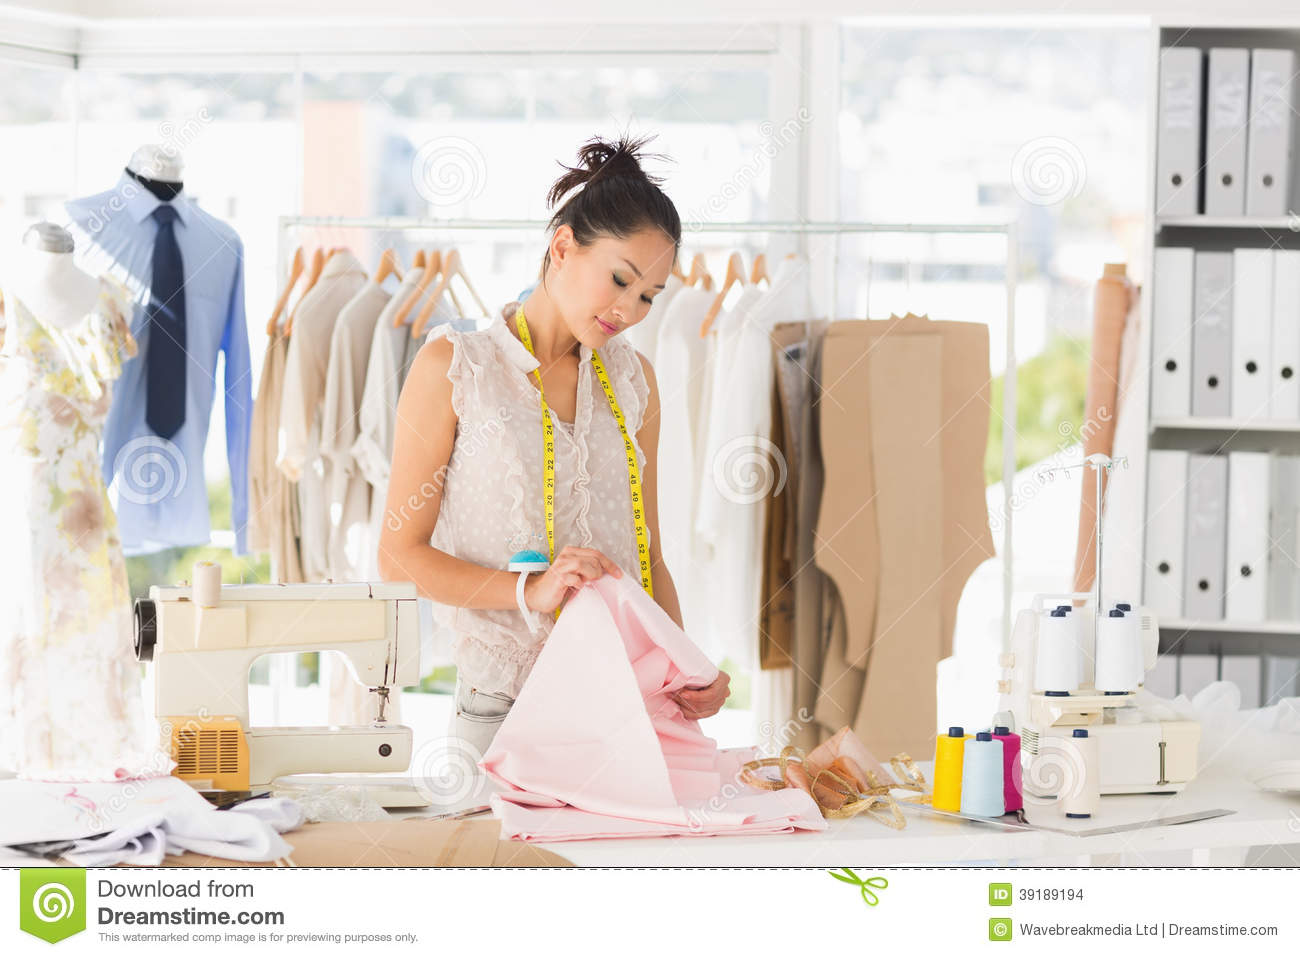 The Person A Fashion Designer Is Designing For